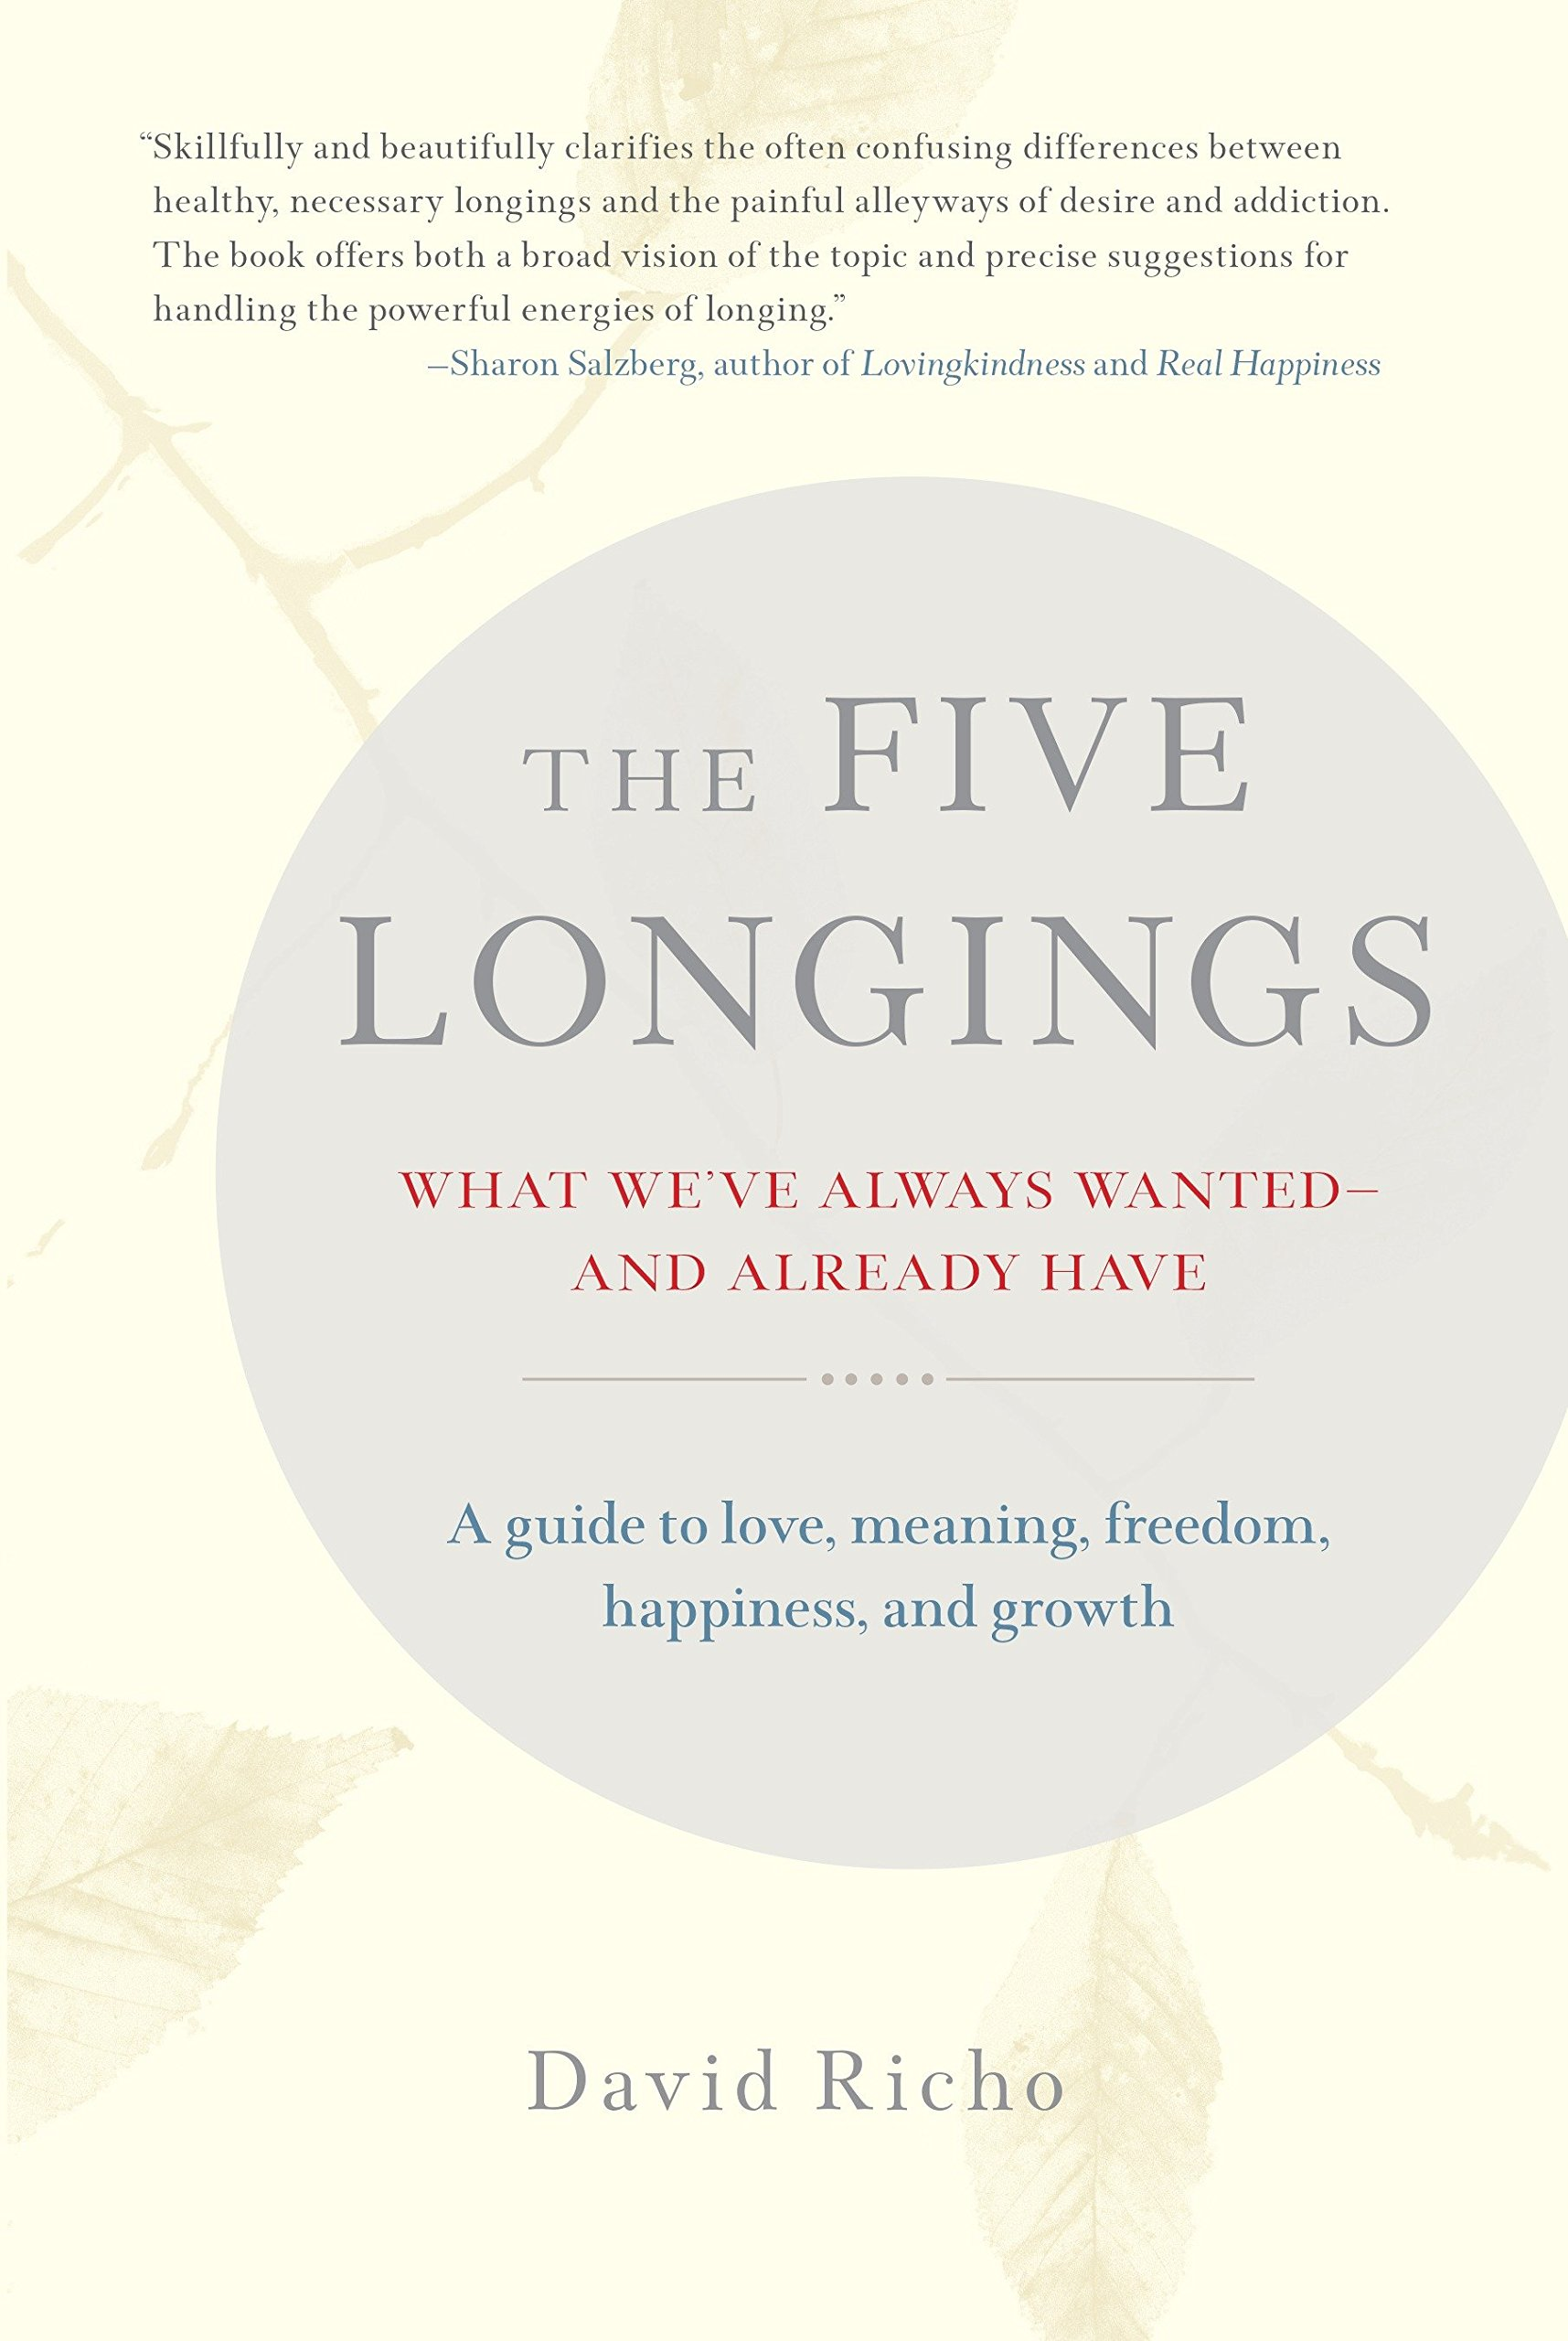 The Five Longings: What We've Always Wanted-and Already Have pdf